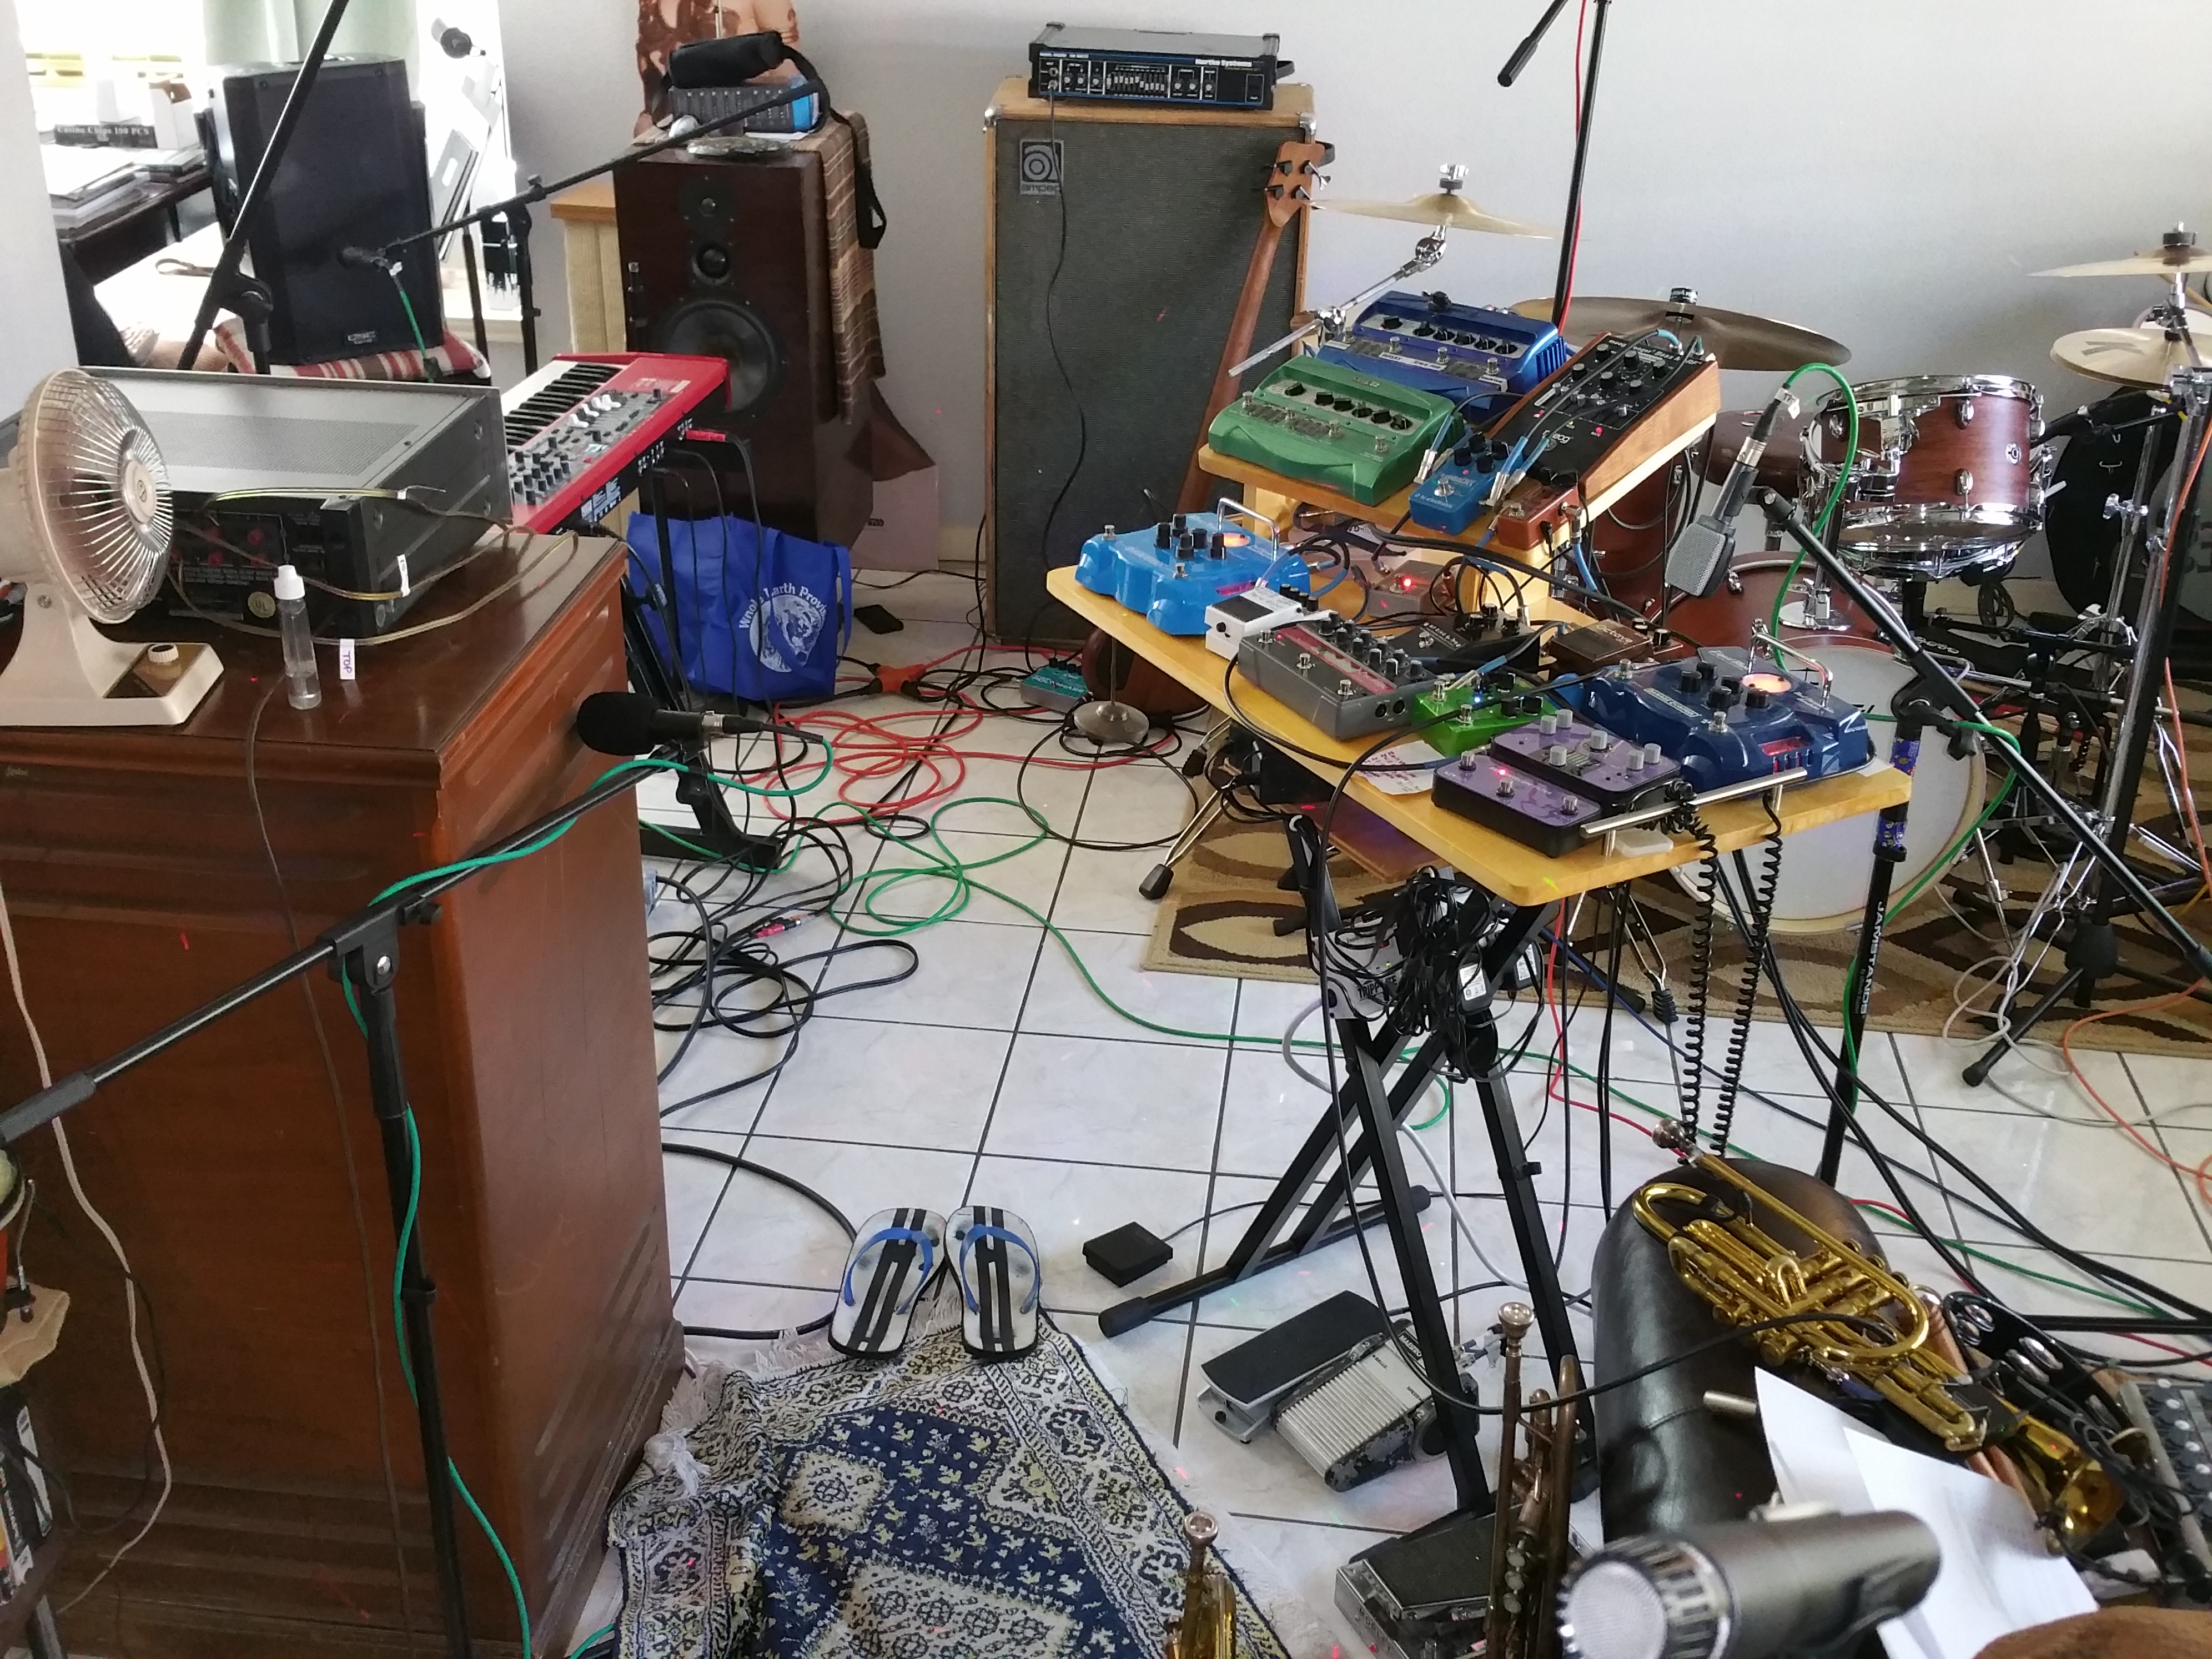 Electric Trumpet Pedalboard Snapshot 3 29 16 Microcosmologist Wiring A Pedal Board